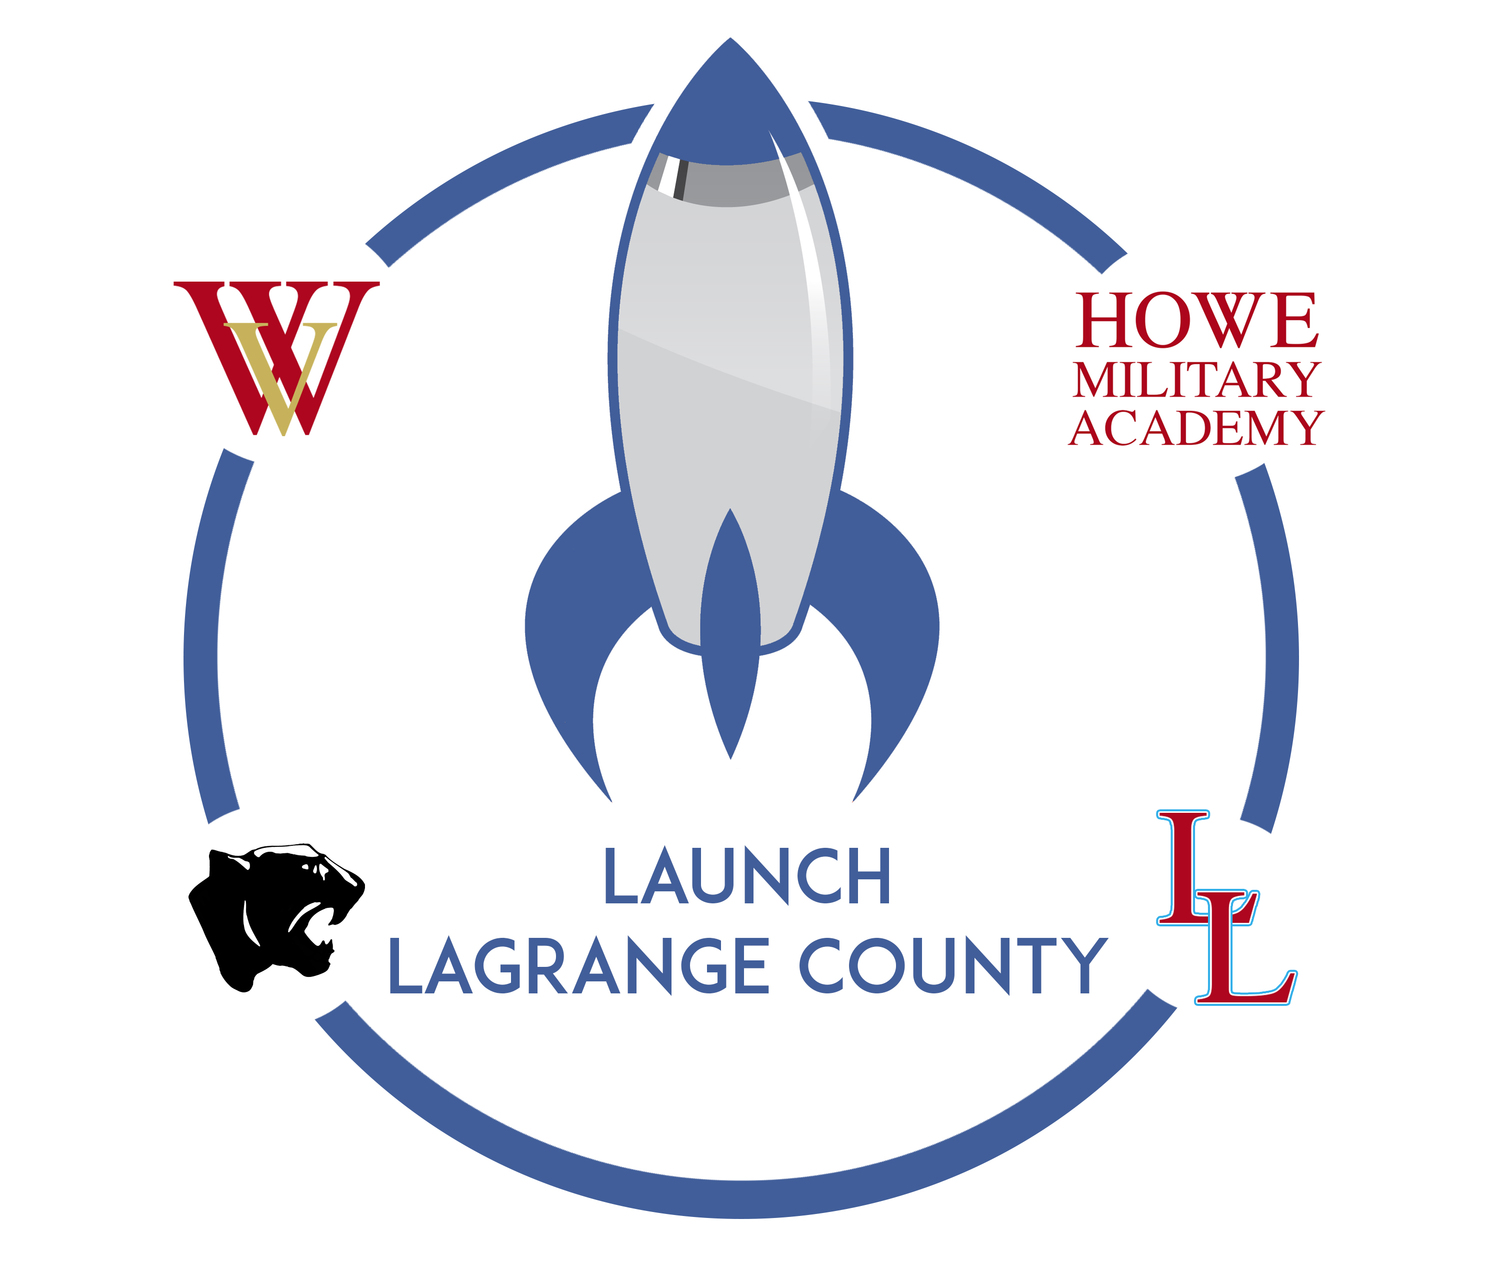 Launch LaGrange County